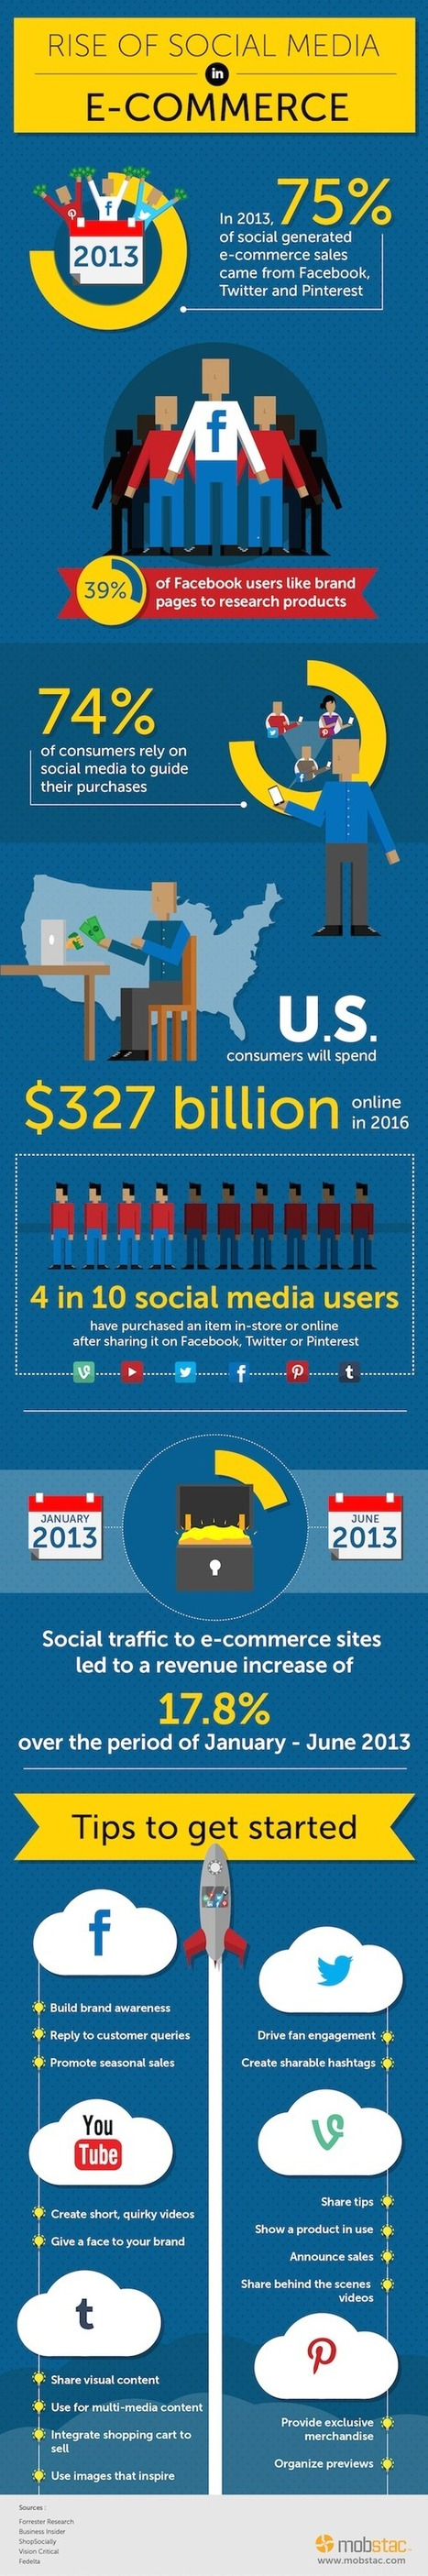 Promote eCommerce Business with Social Media | Small Business | Scoop.it